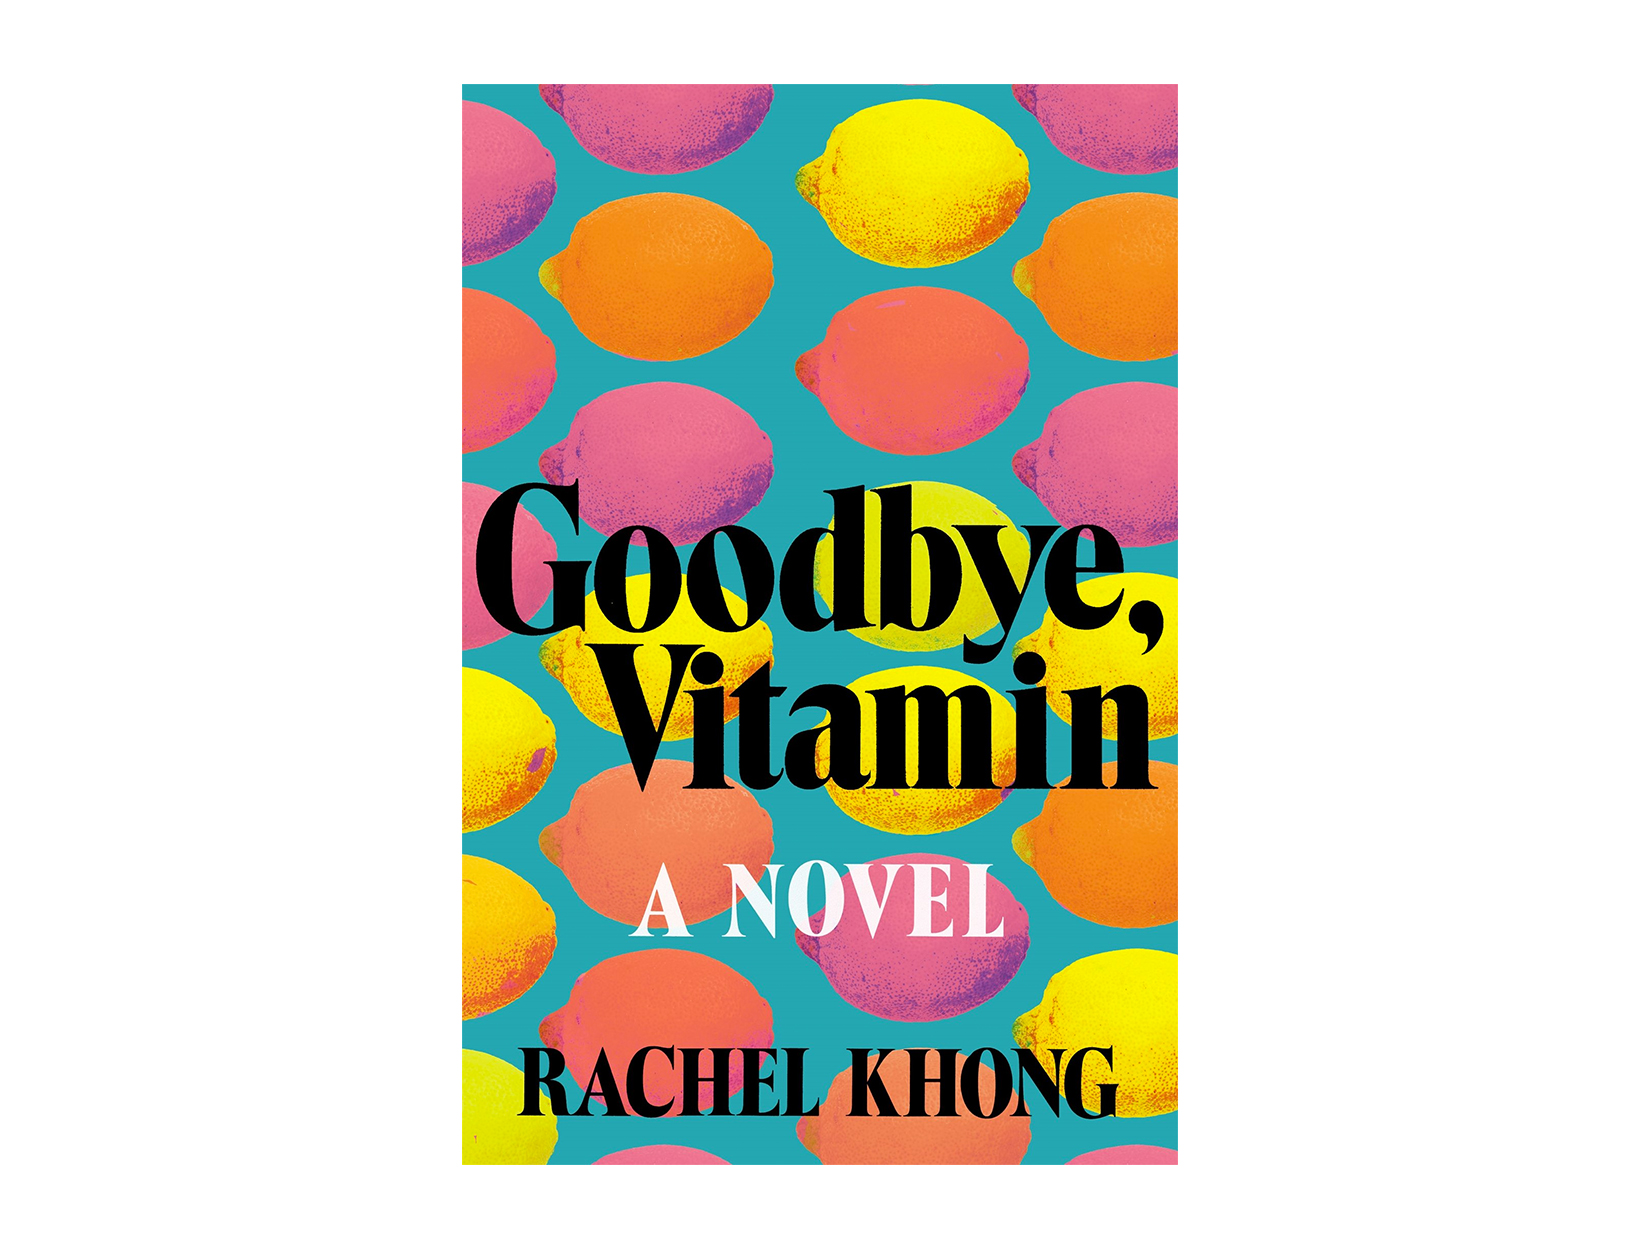 Goodbye, Vitamin by Rachel Khong